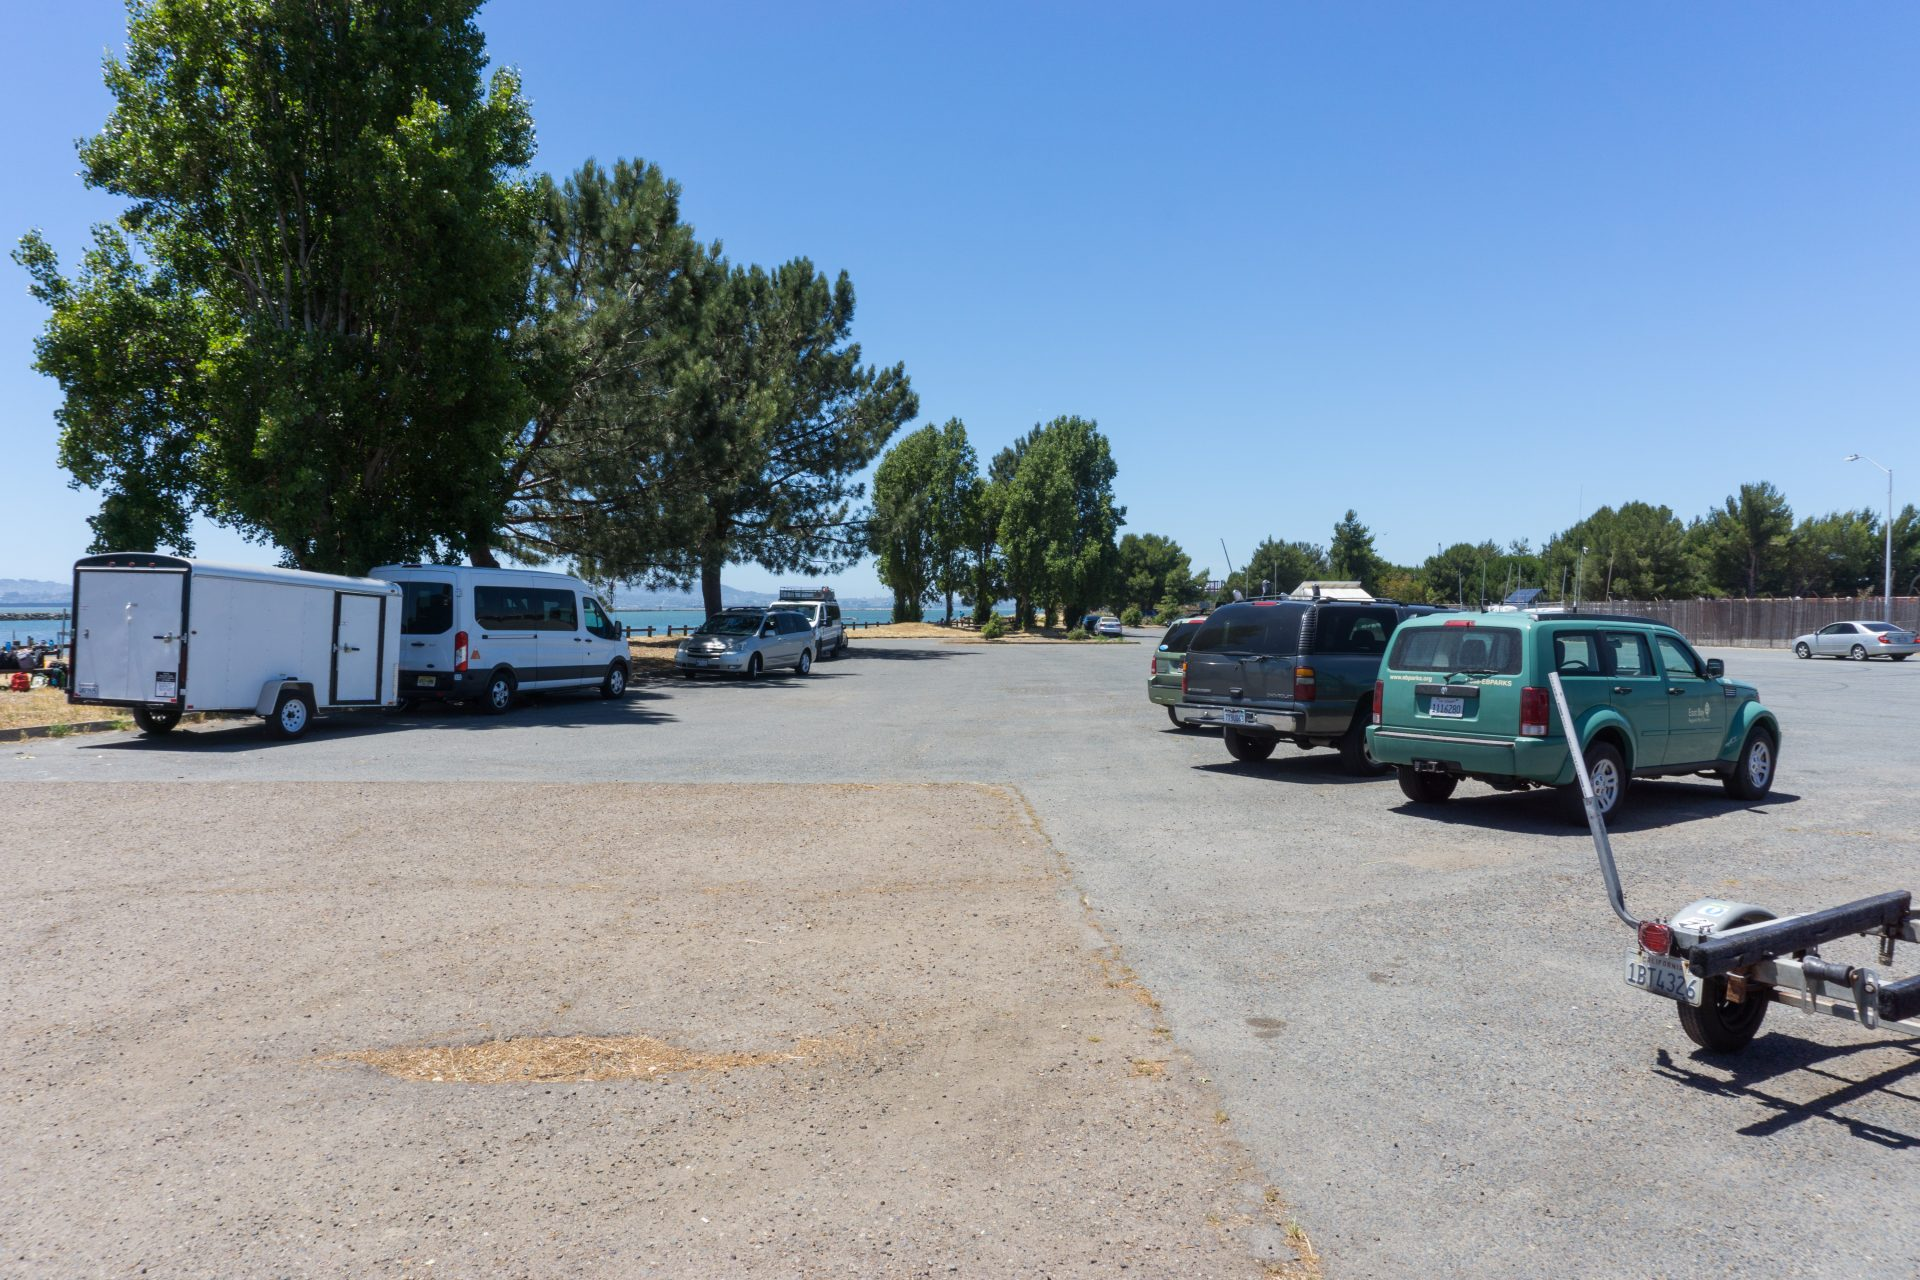 Parking lot with large vans, trailers, surrounded by trees